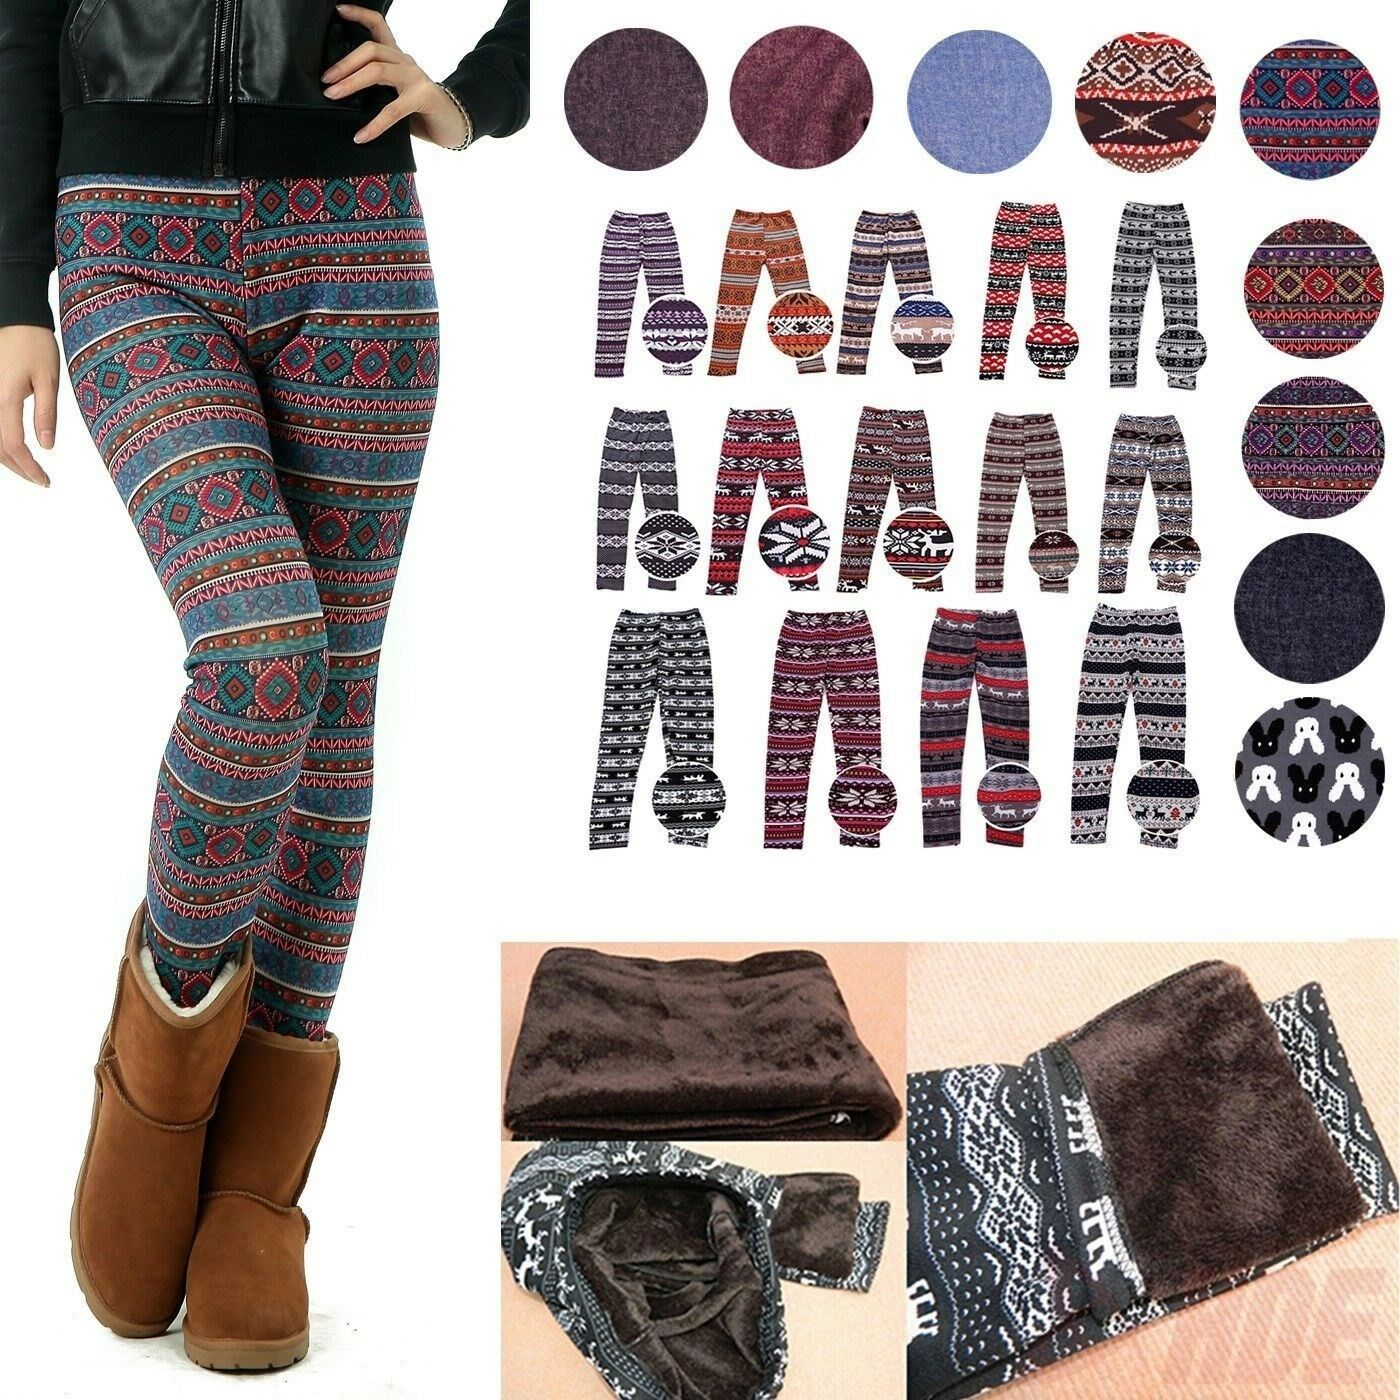 Leggings - Women's Fleece Nordic Leggings Winter Knit Thermal Insulated Christmas Pants